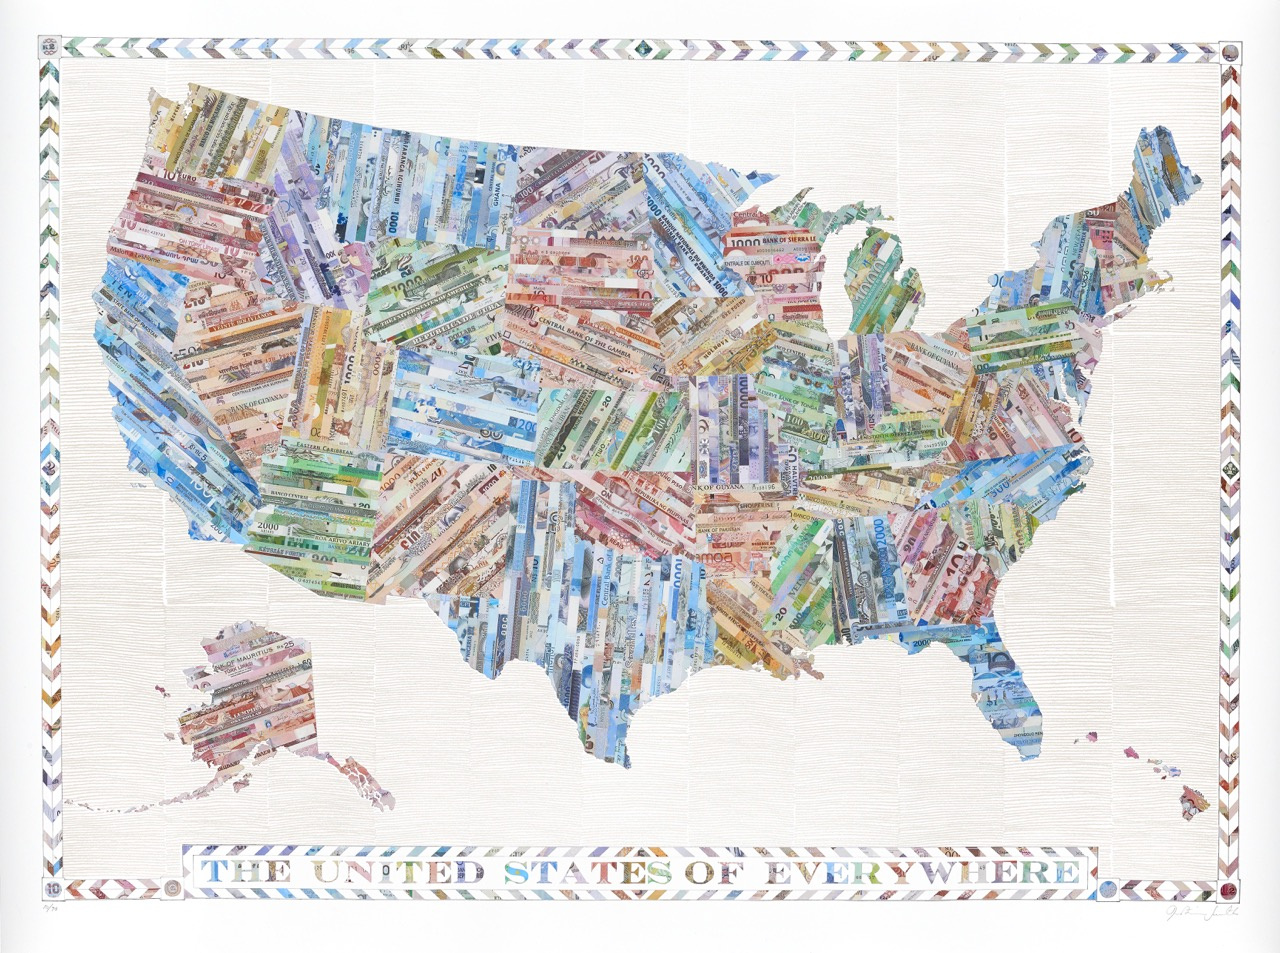 The United States of Everywhere - a limited edition money map print by Justine Smith, London